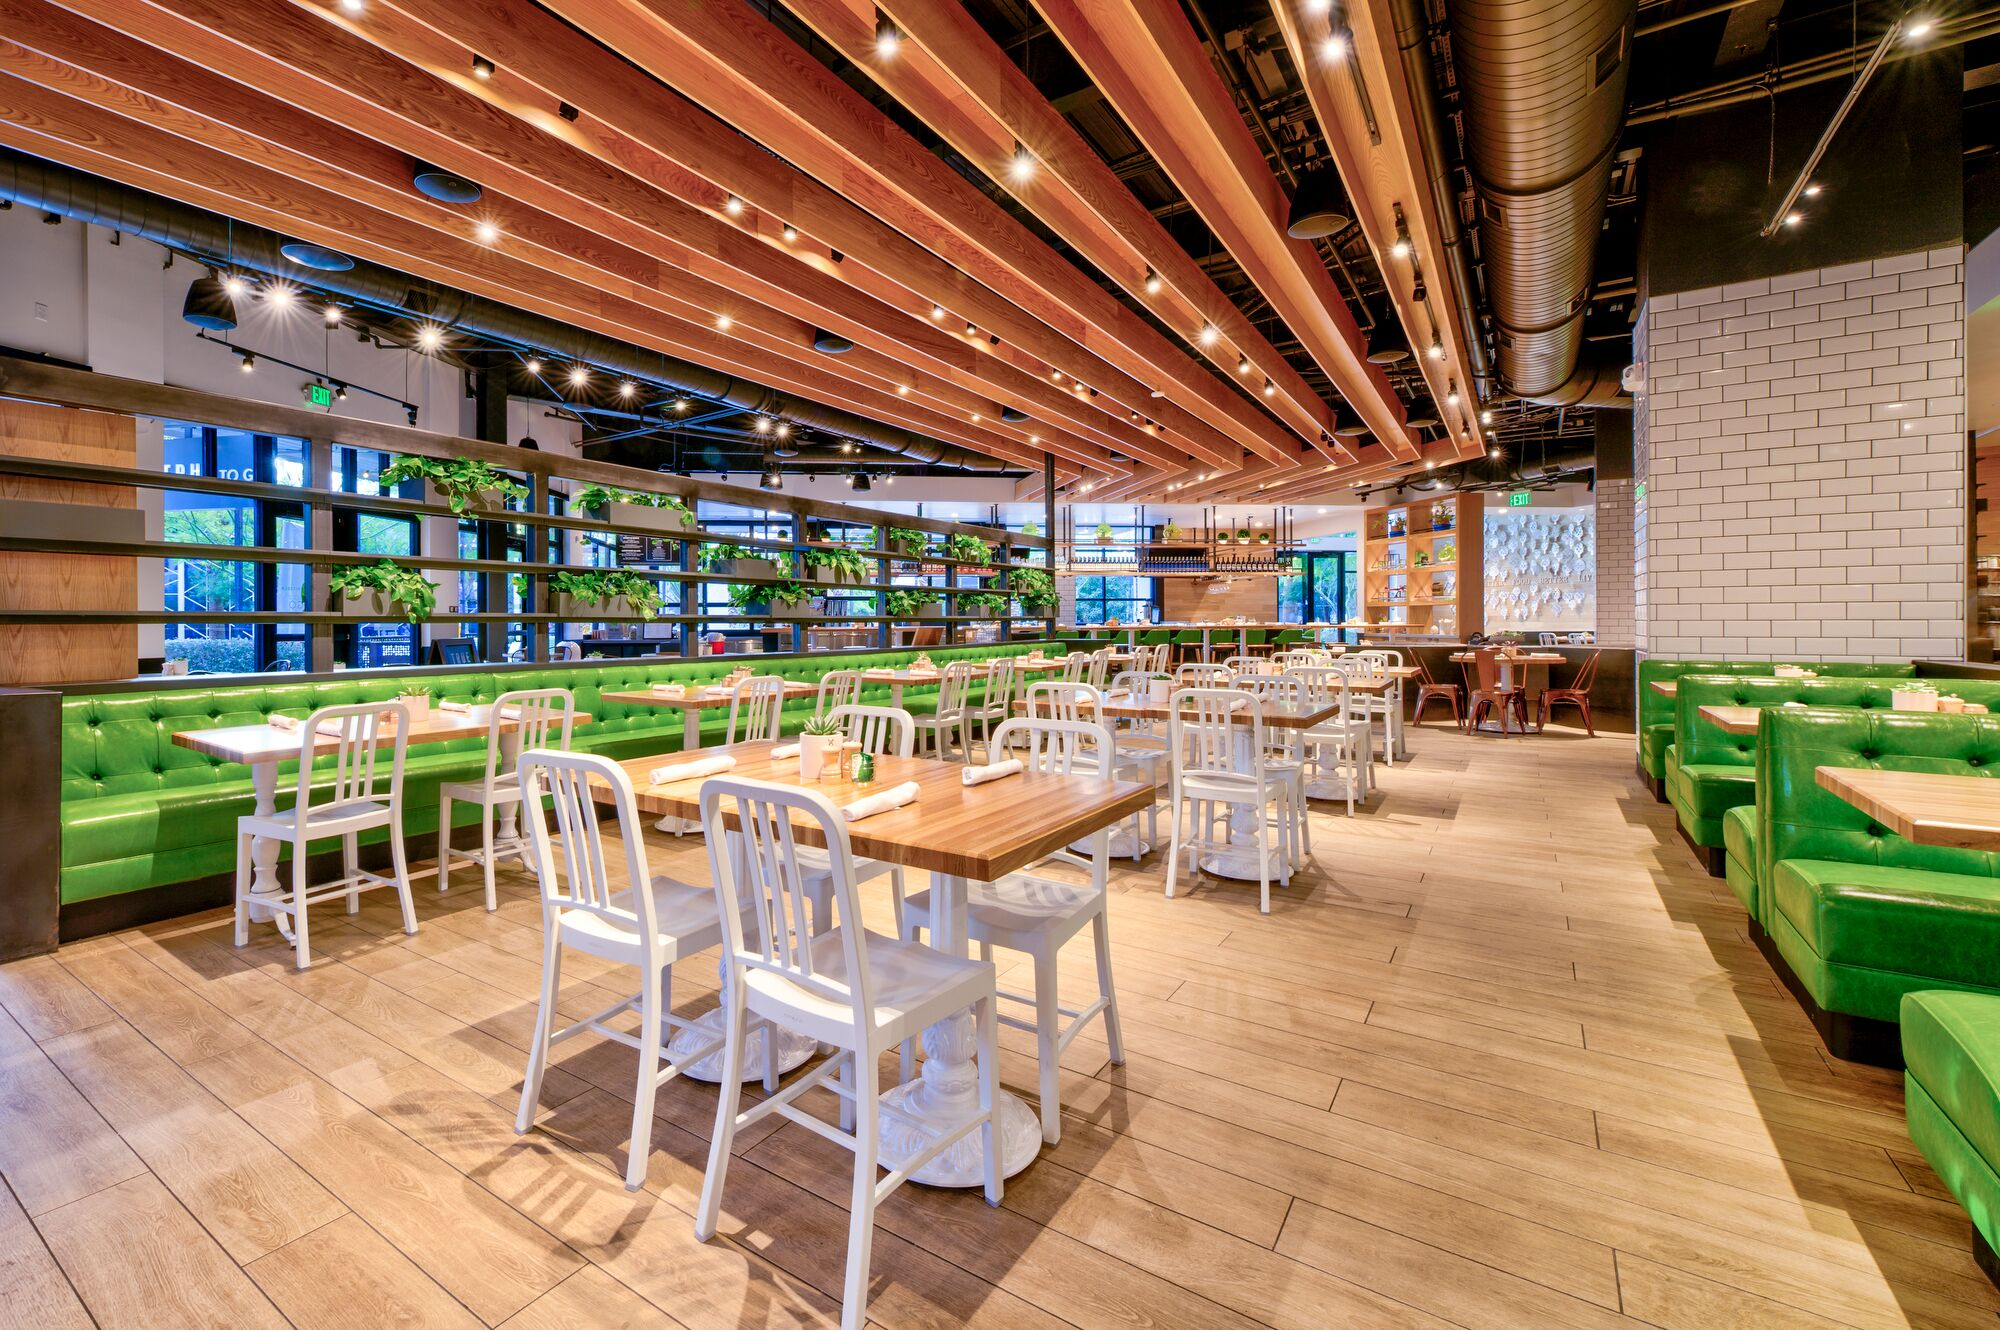 The bright and airy main dining section at True Food Kitchen.